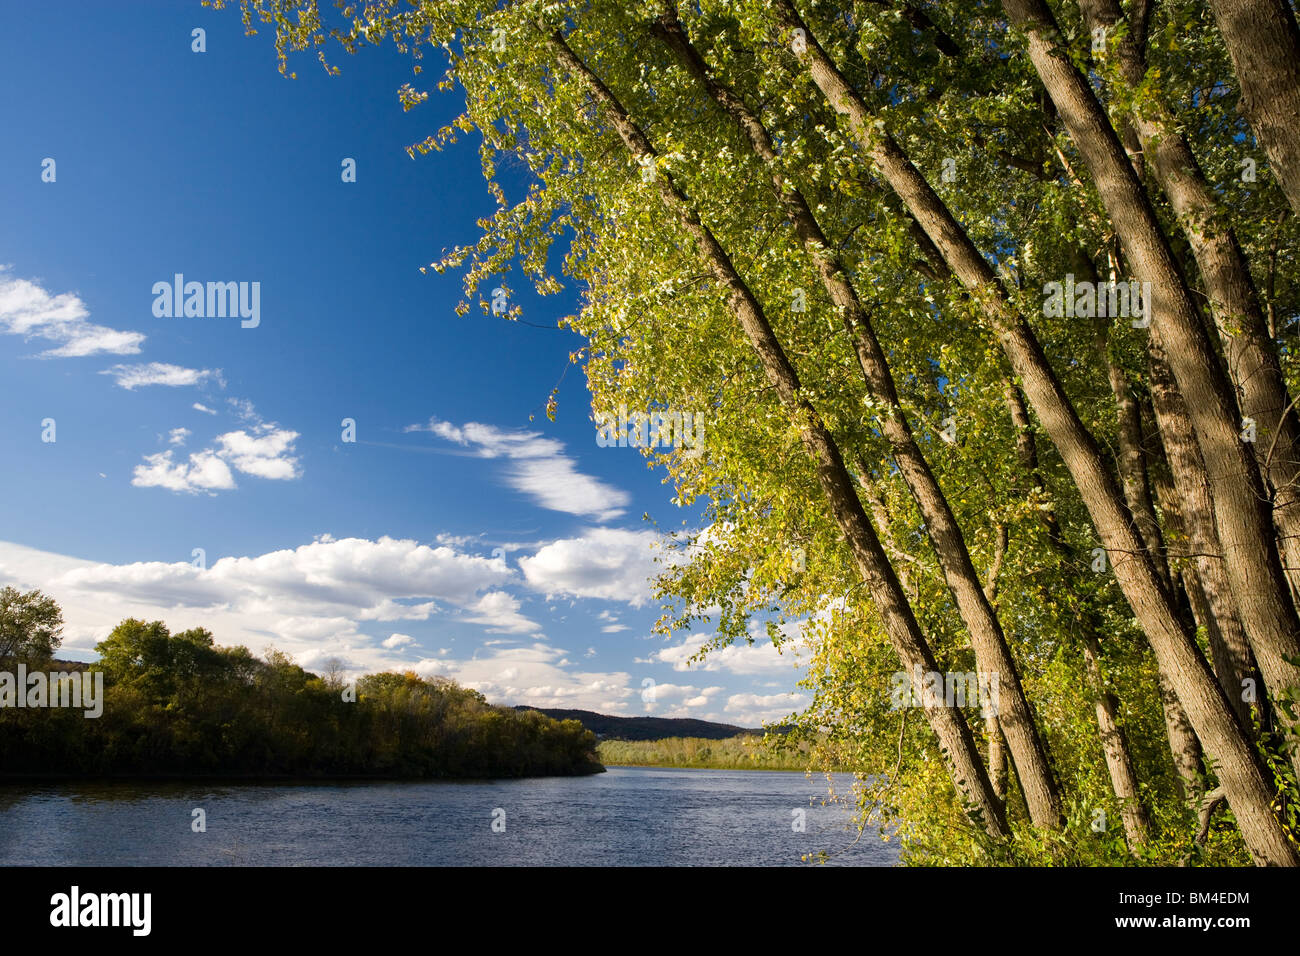 Silver maple trees lean over the Connecticut River at the Sawyer Farm in Walpole, Connecticut. - Stock Image